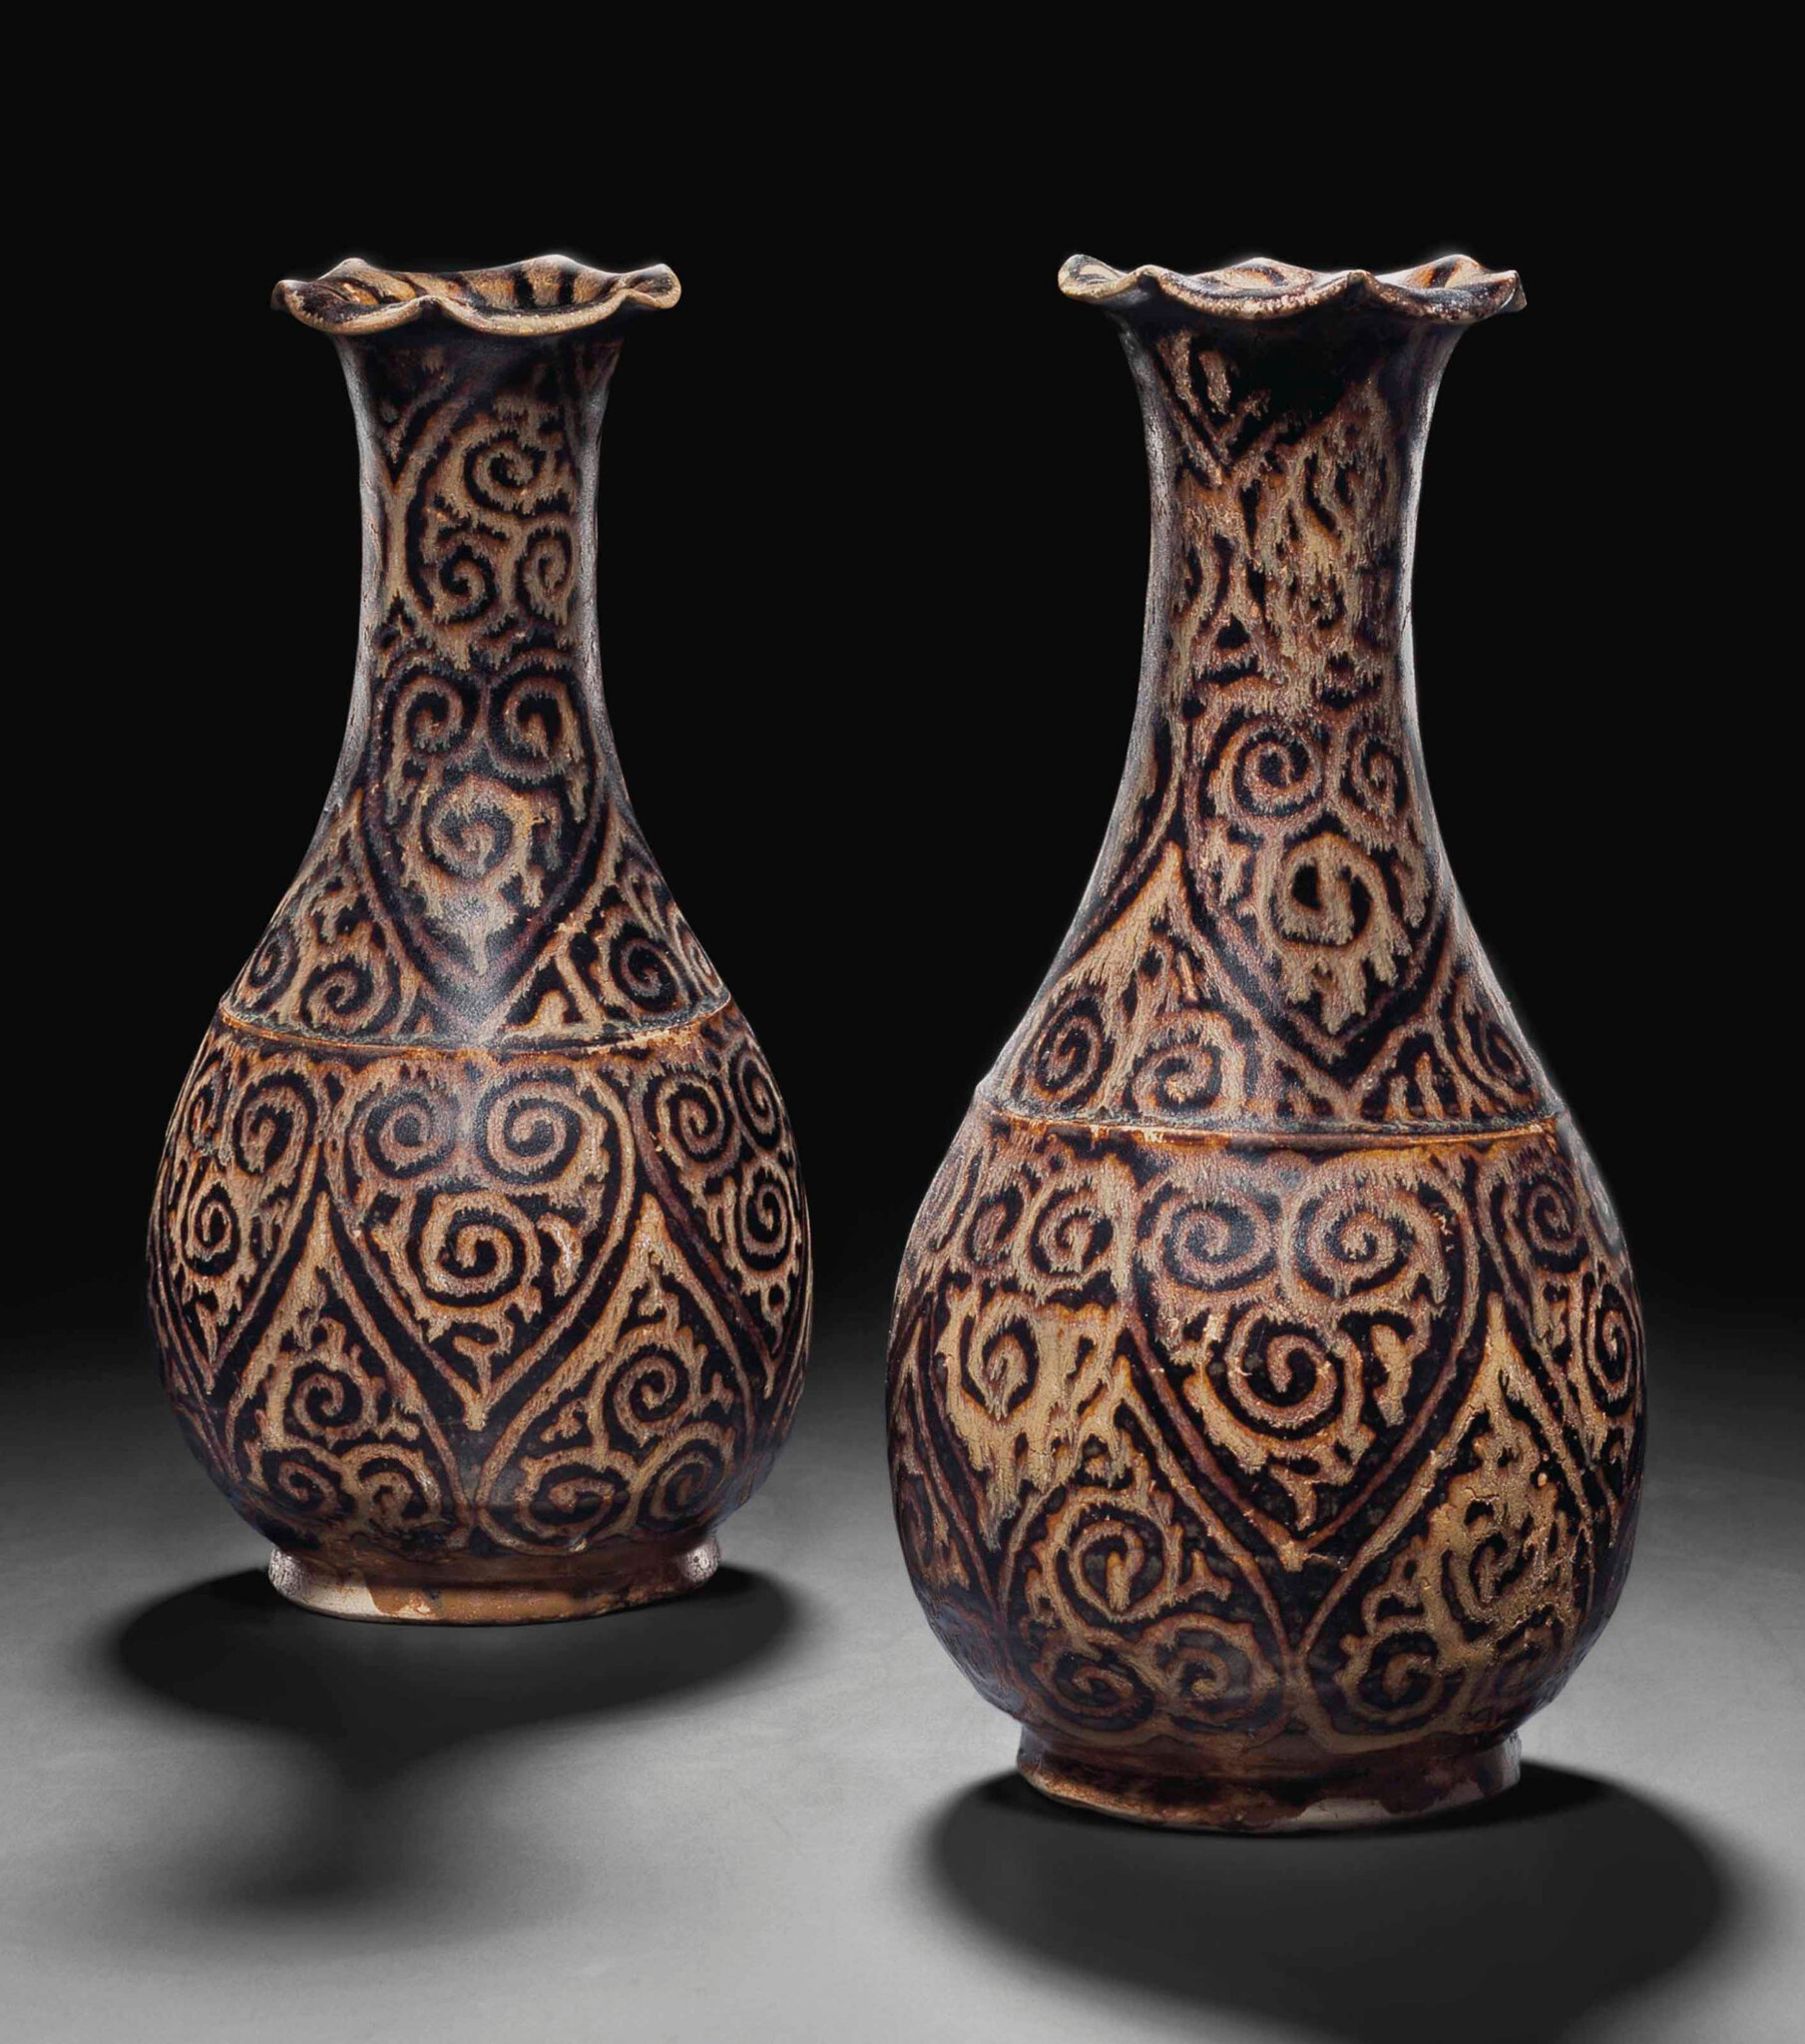 A pair of very rare Jizhou guri-style pear-shaped vases, Southern Song dynasty